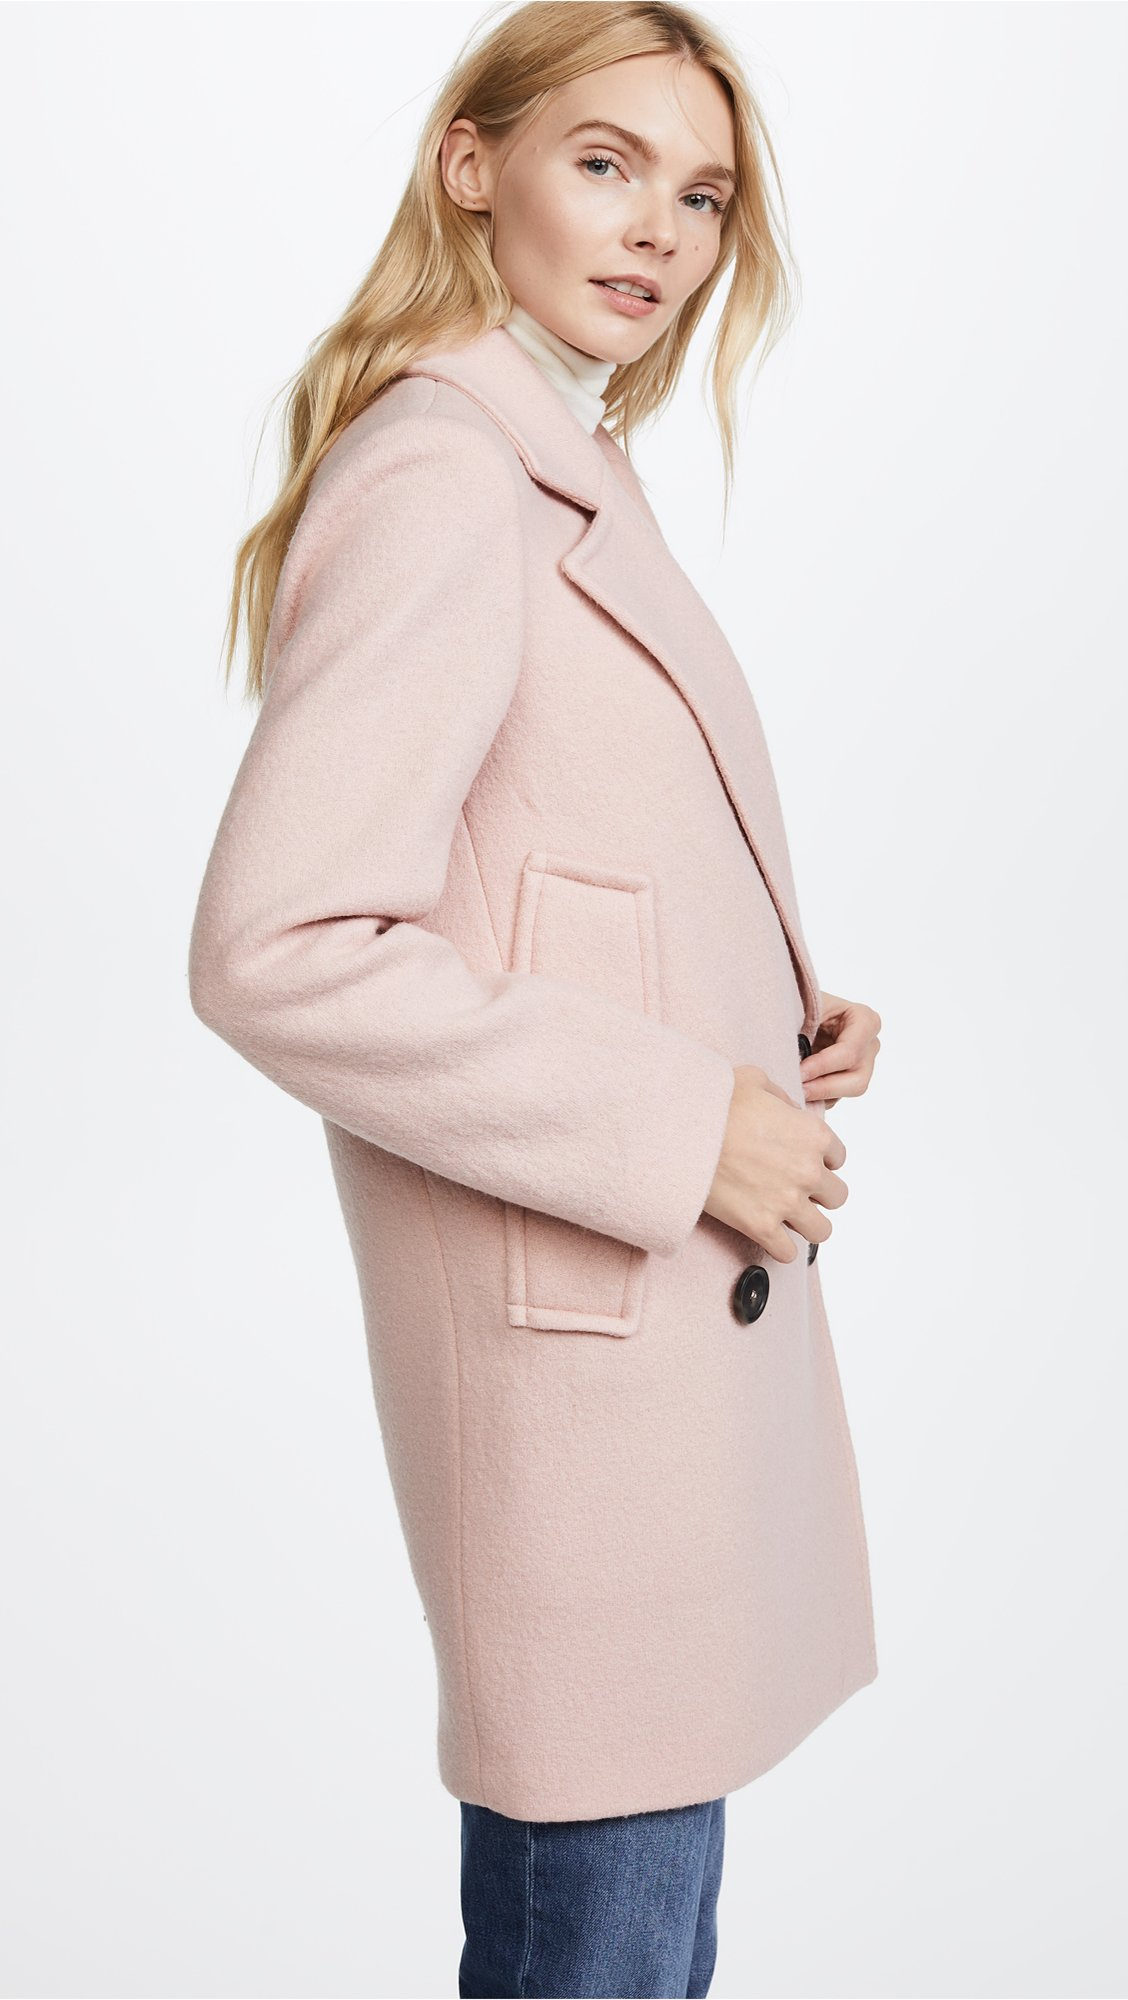 Theory Women's Cape Coat, Chalk Pink, S by Theory (Image #4)